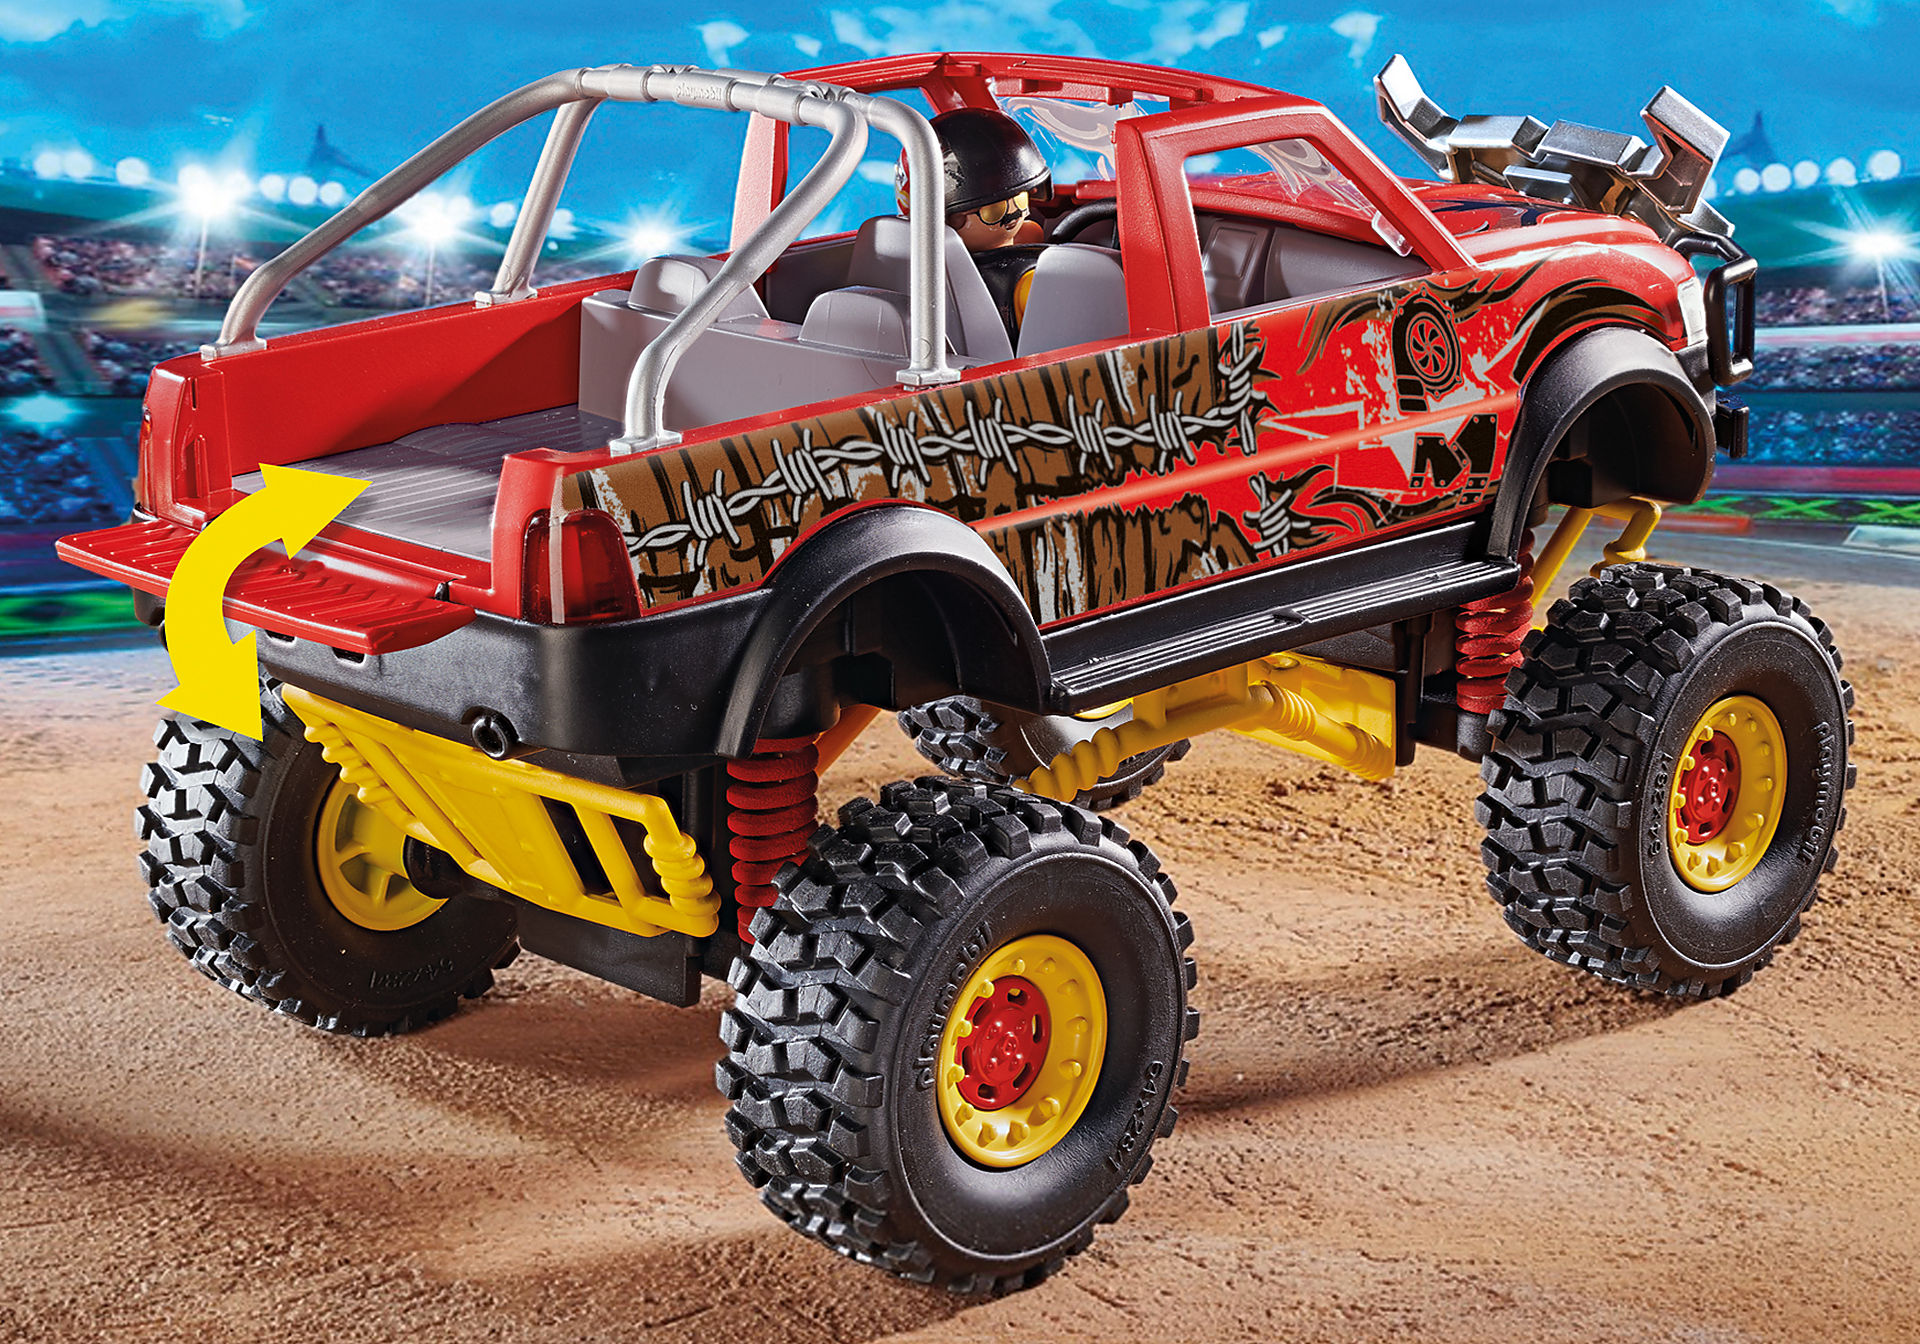 70549 Stuntshow Monster Truck Horned zoom image6